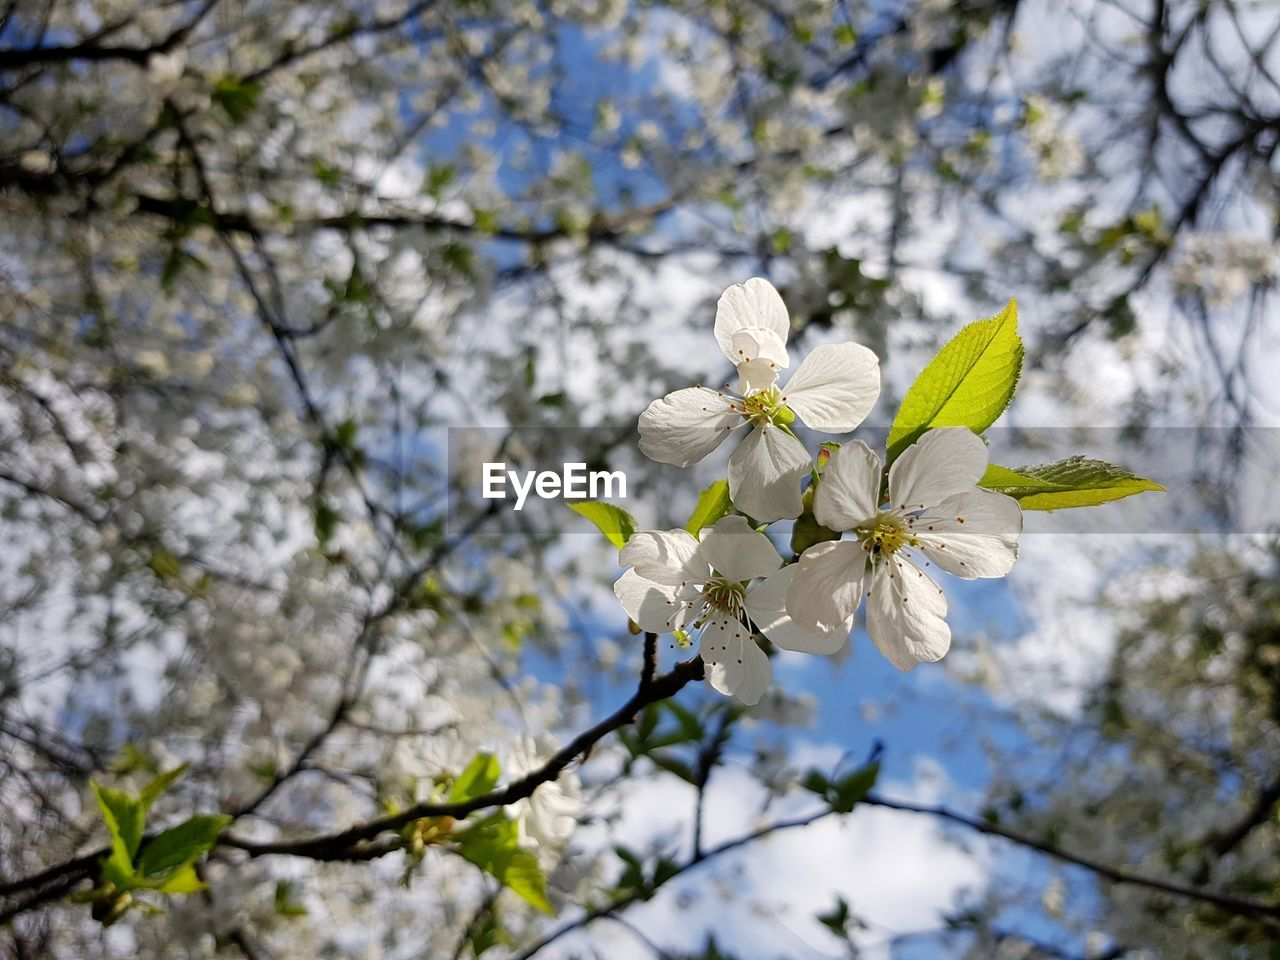 flowering plant, flower, plant, fragility, vulnerability, freshness, growth, beauty in nature, tree, blossom, petal, white color, inflorescence, flower head, branch, low angle view, nature, day, springtime, focus on foreground, cherry blossom, no people, pollen, outdoors, cherry tree, spring